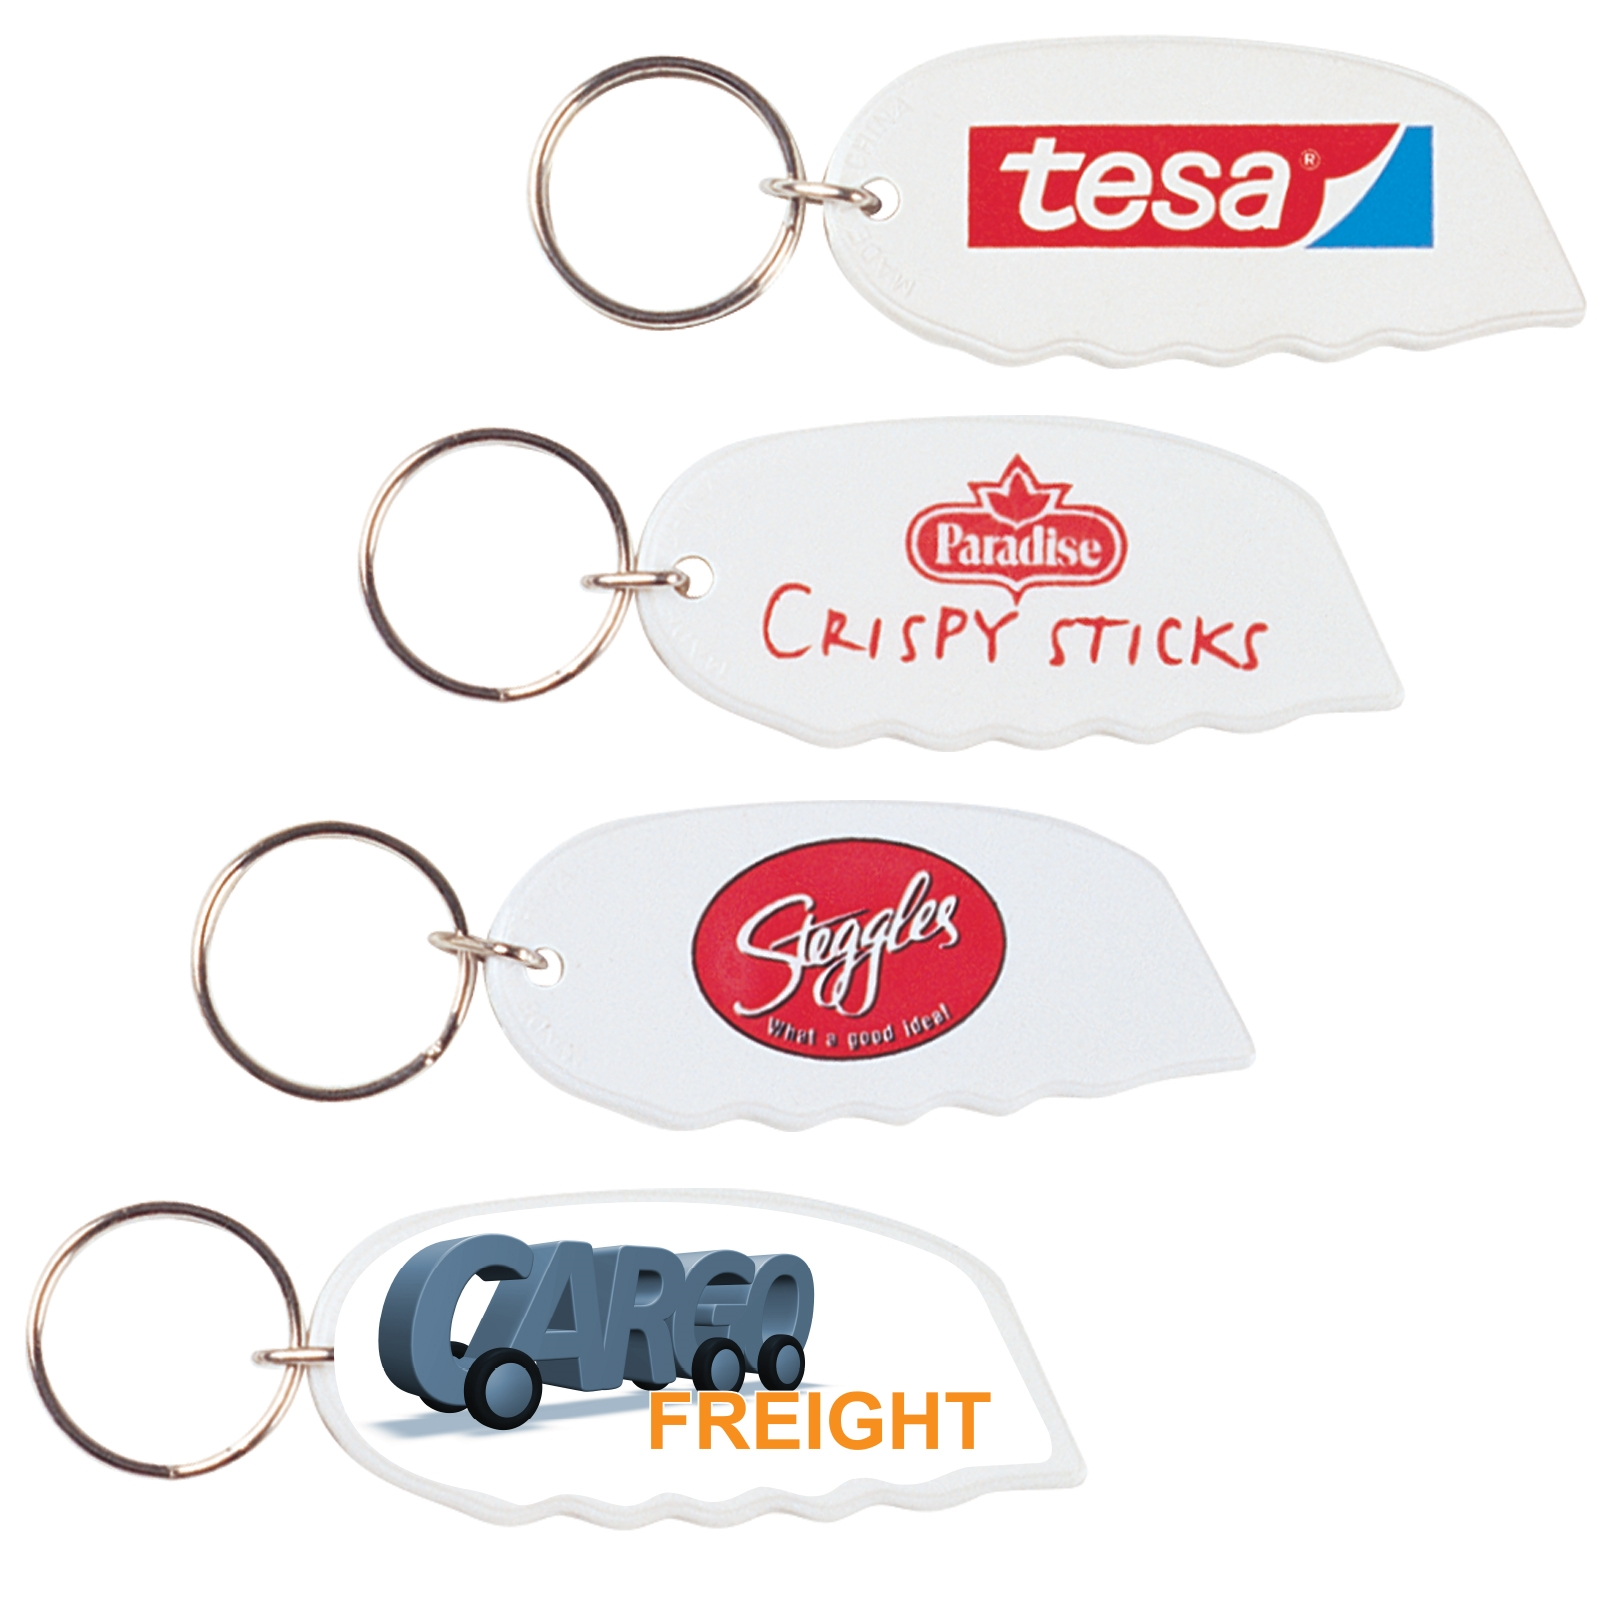 White Marvel Cutter / Keyring - Includes a 1 colour printed logo, From $0.69